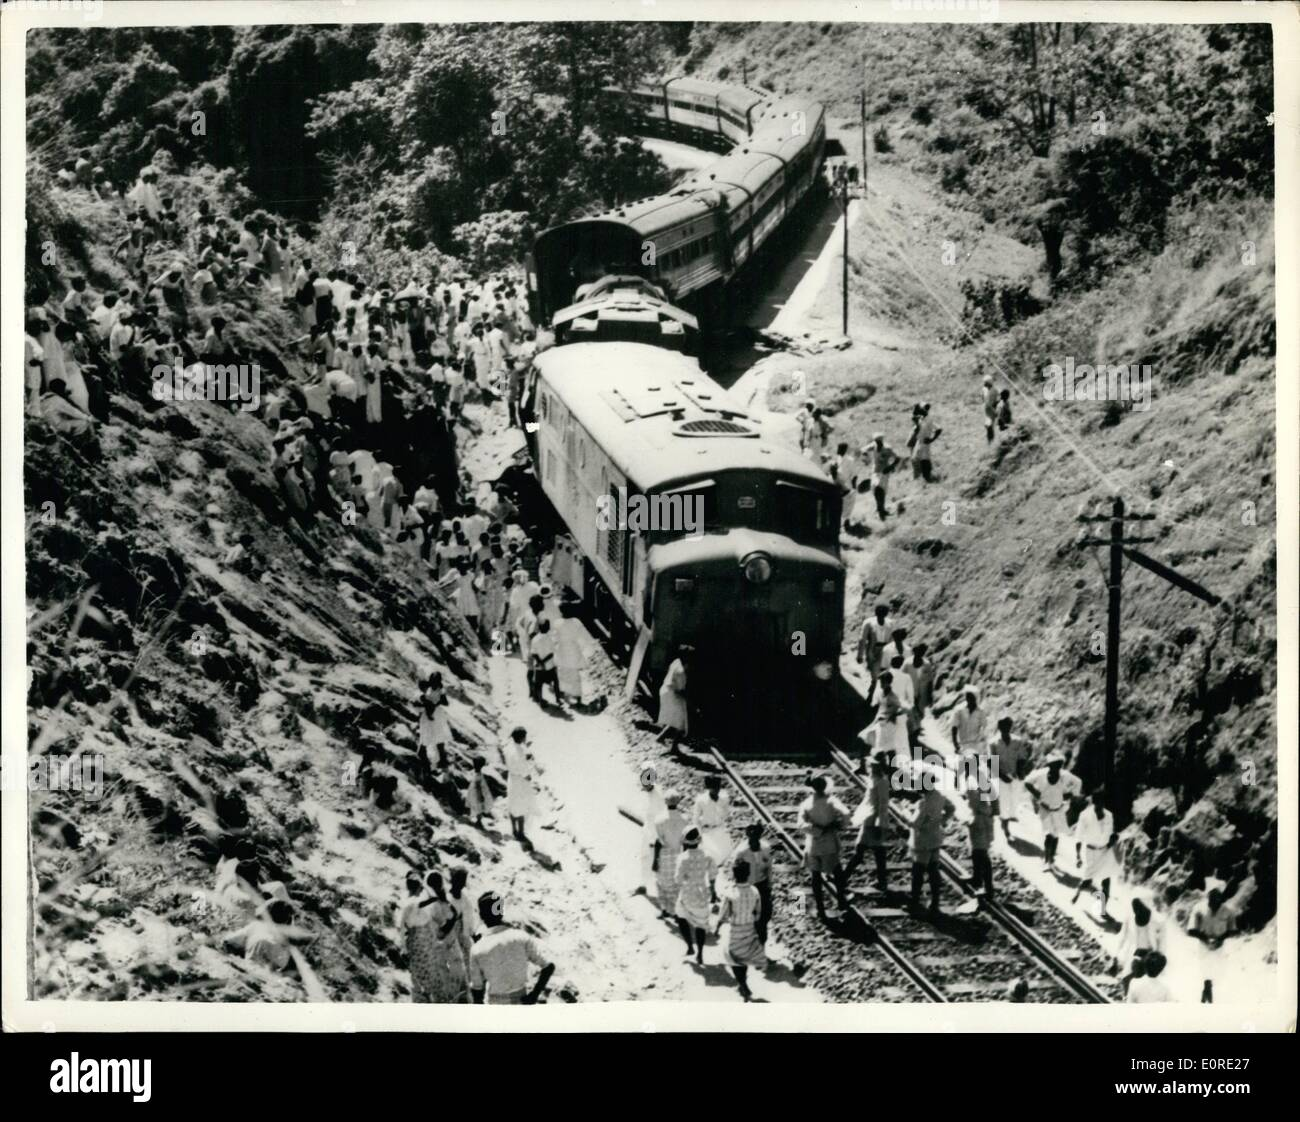 Feb. 02, 1959 - Eleven Injured In Ceylon Rail Crash...To Be Investigated By Criminal Department. An official inquiry has been ordered into the train accidents which occurred only two days prior to the General Strike - scheduled as a protest against Public Security (Amendment) Bill recently adopted by Ceylon's House of Representatives. One accident occurred in the heart of mountainous tea growing region where 235,000 tea plantation workers are due to strike - and resulted in eleven people being seriously injured. The other was on the North Western Line - and caused a blockage - Stock Image